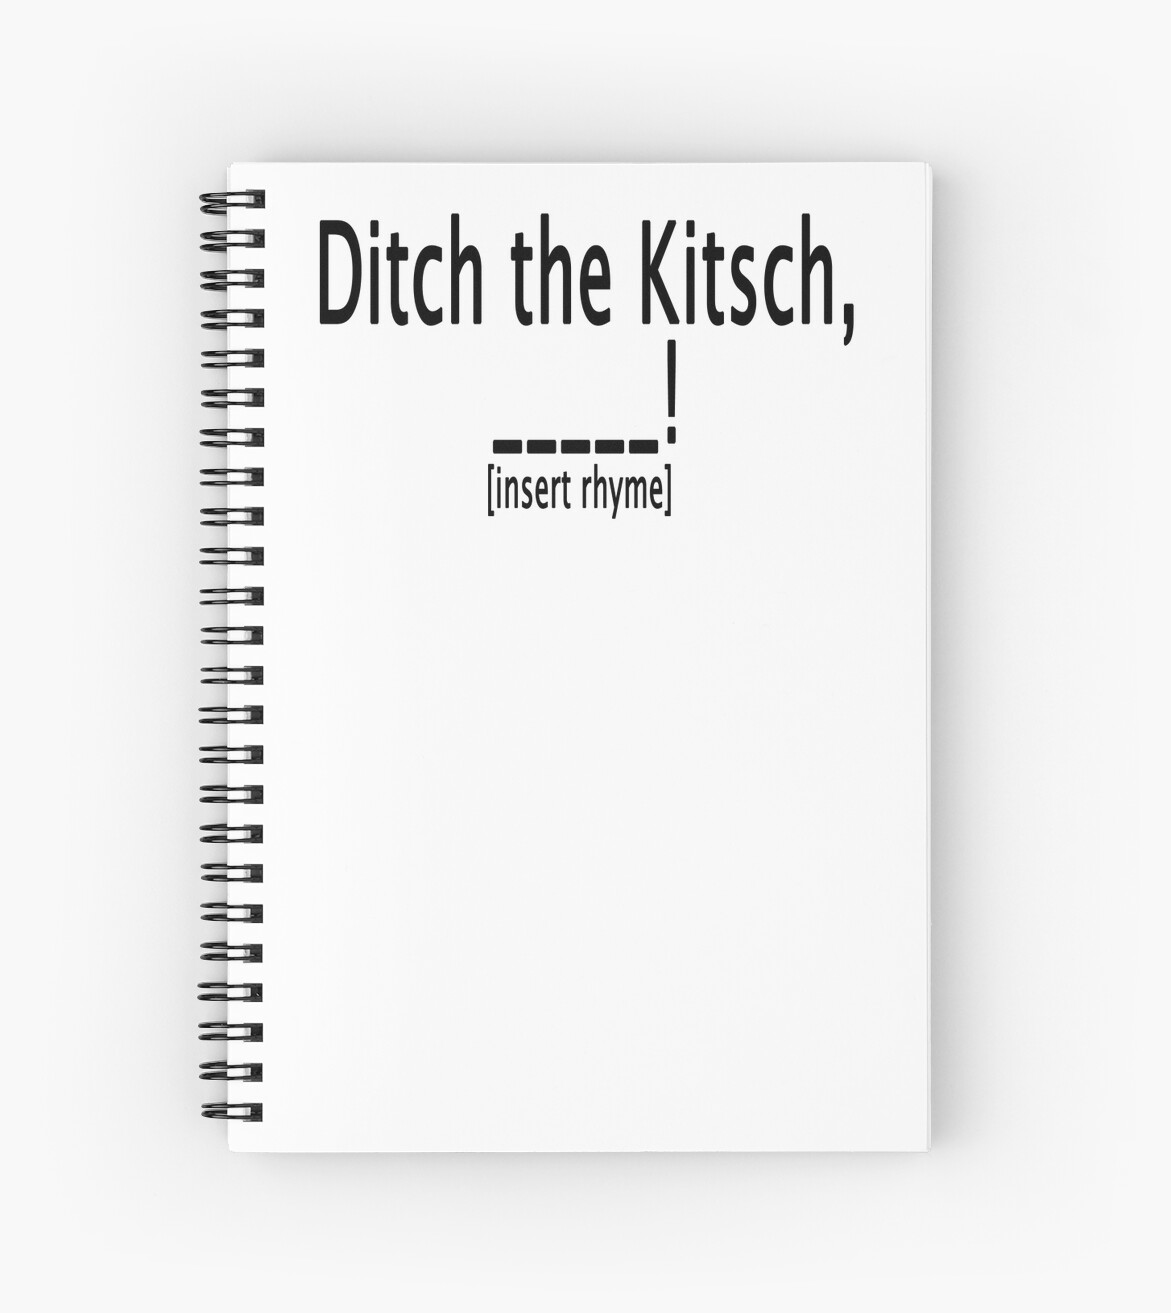 Ditch the Kitsch...insert rhyme! -  Funny by Denis Marsili